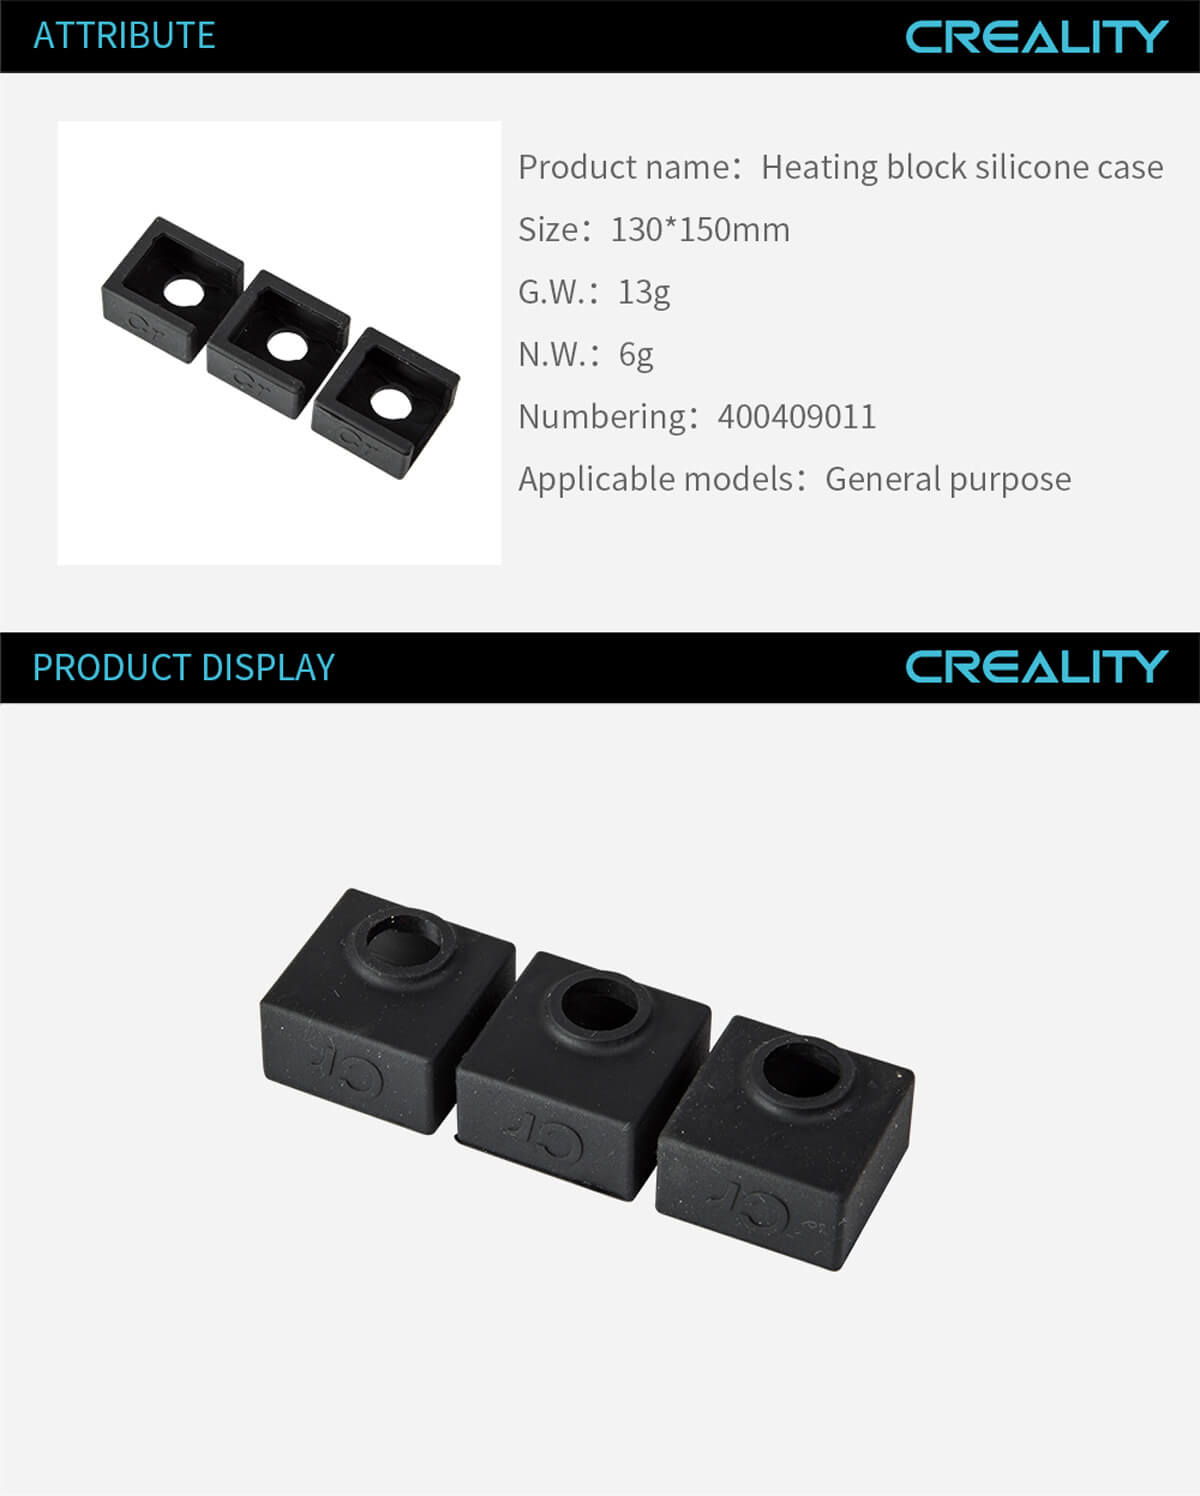 creality-3d-printer-Heating-Block-Silicone-Case-11